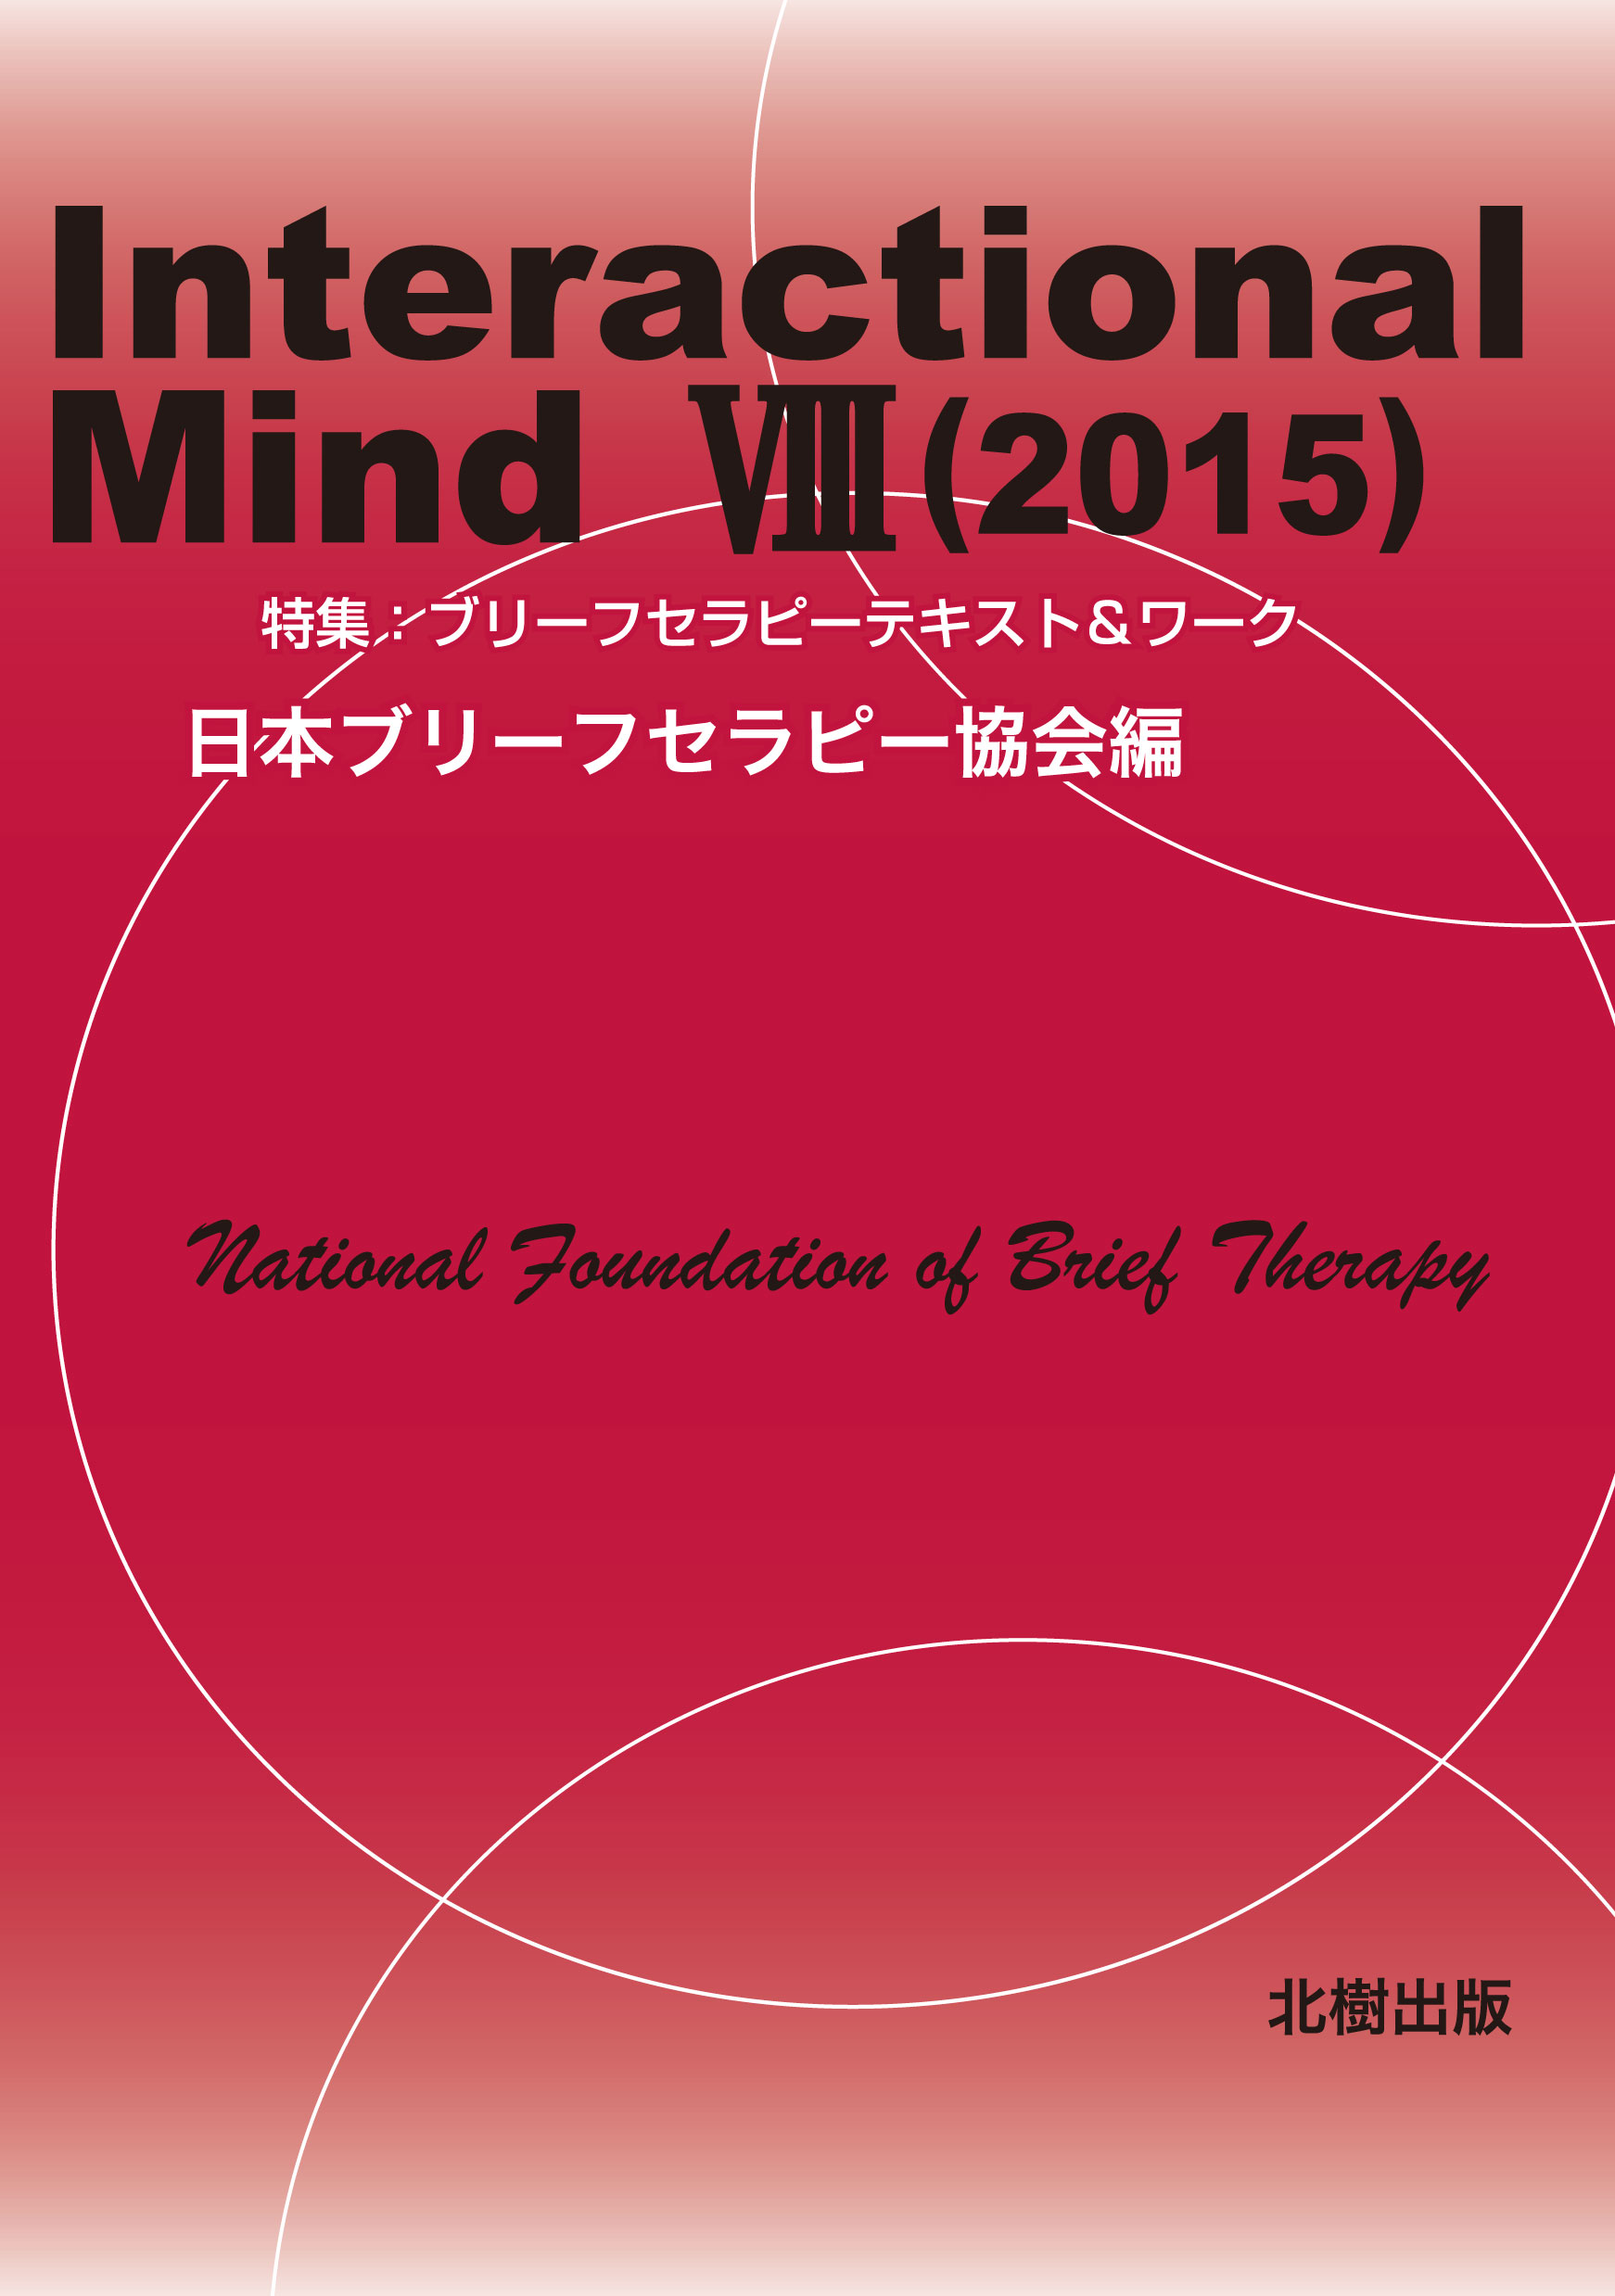 Interactional mind �[(2015)